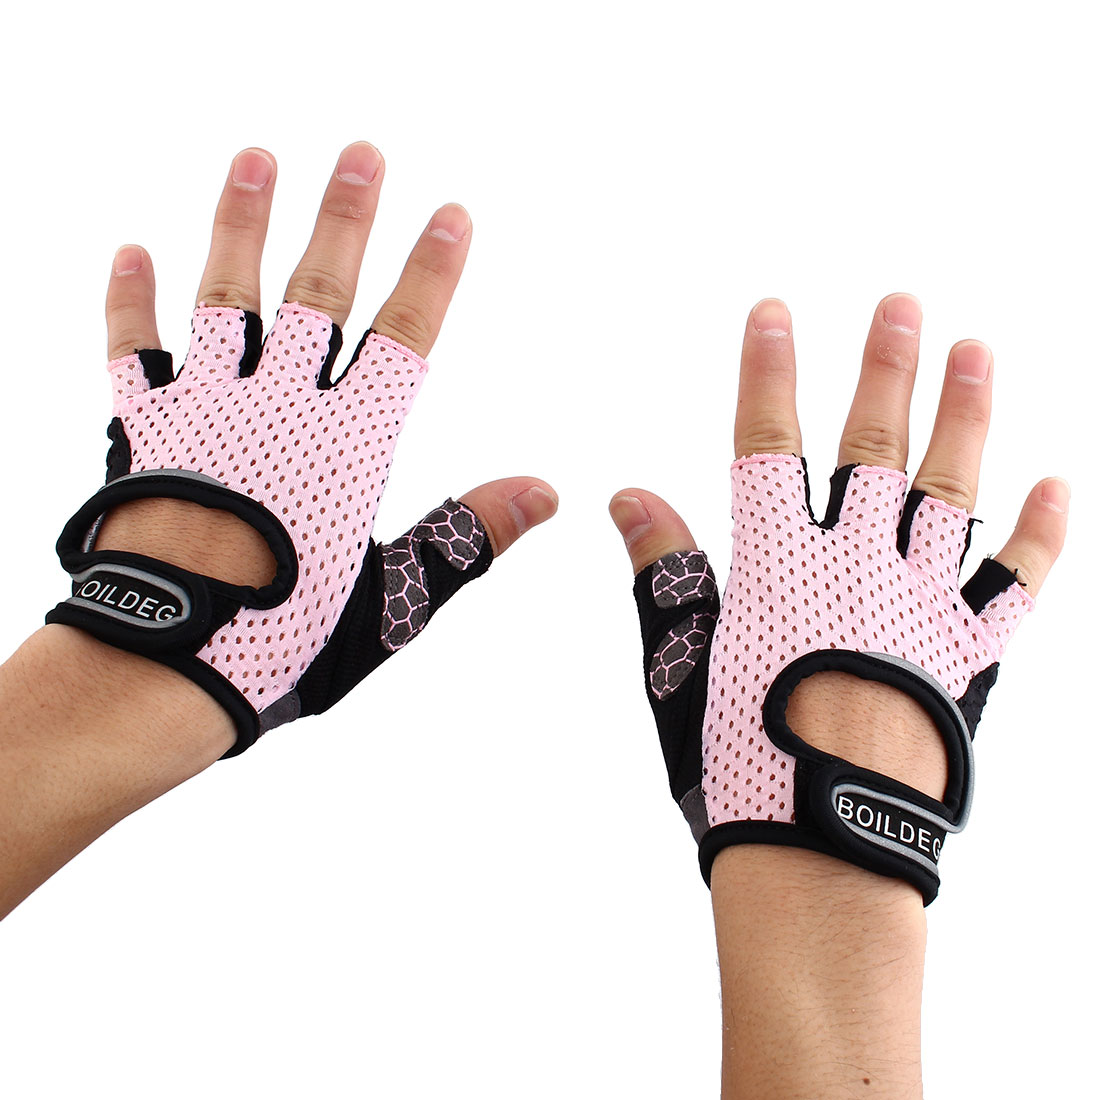 BOILDEG Authorized Unisex Sports Weight Fitness Exercise Workout Breathable Palm Support Gloves Pink Size L Pair